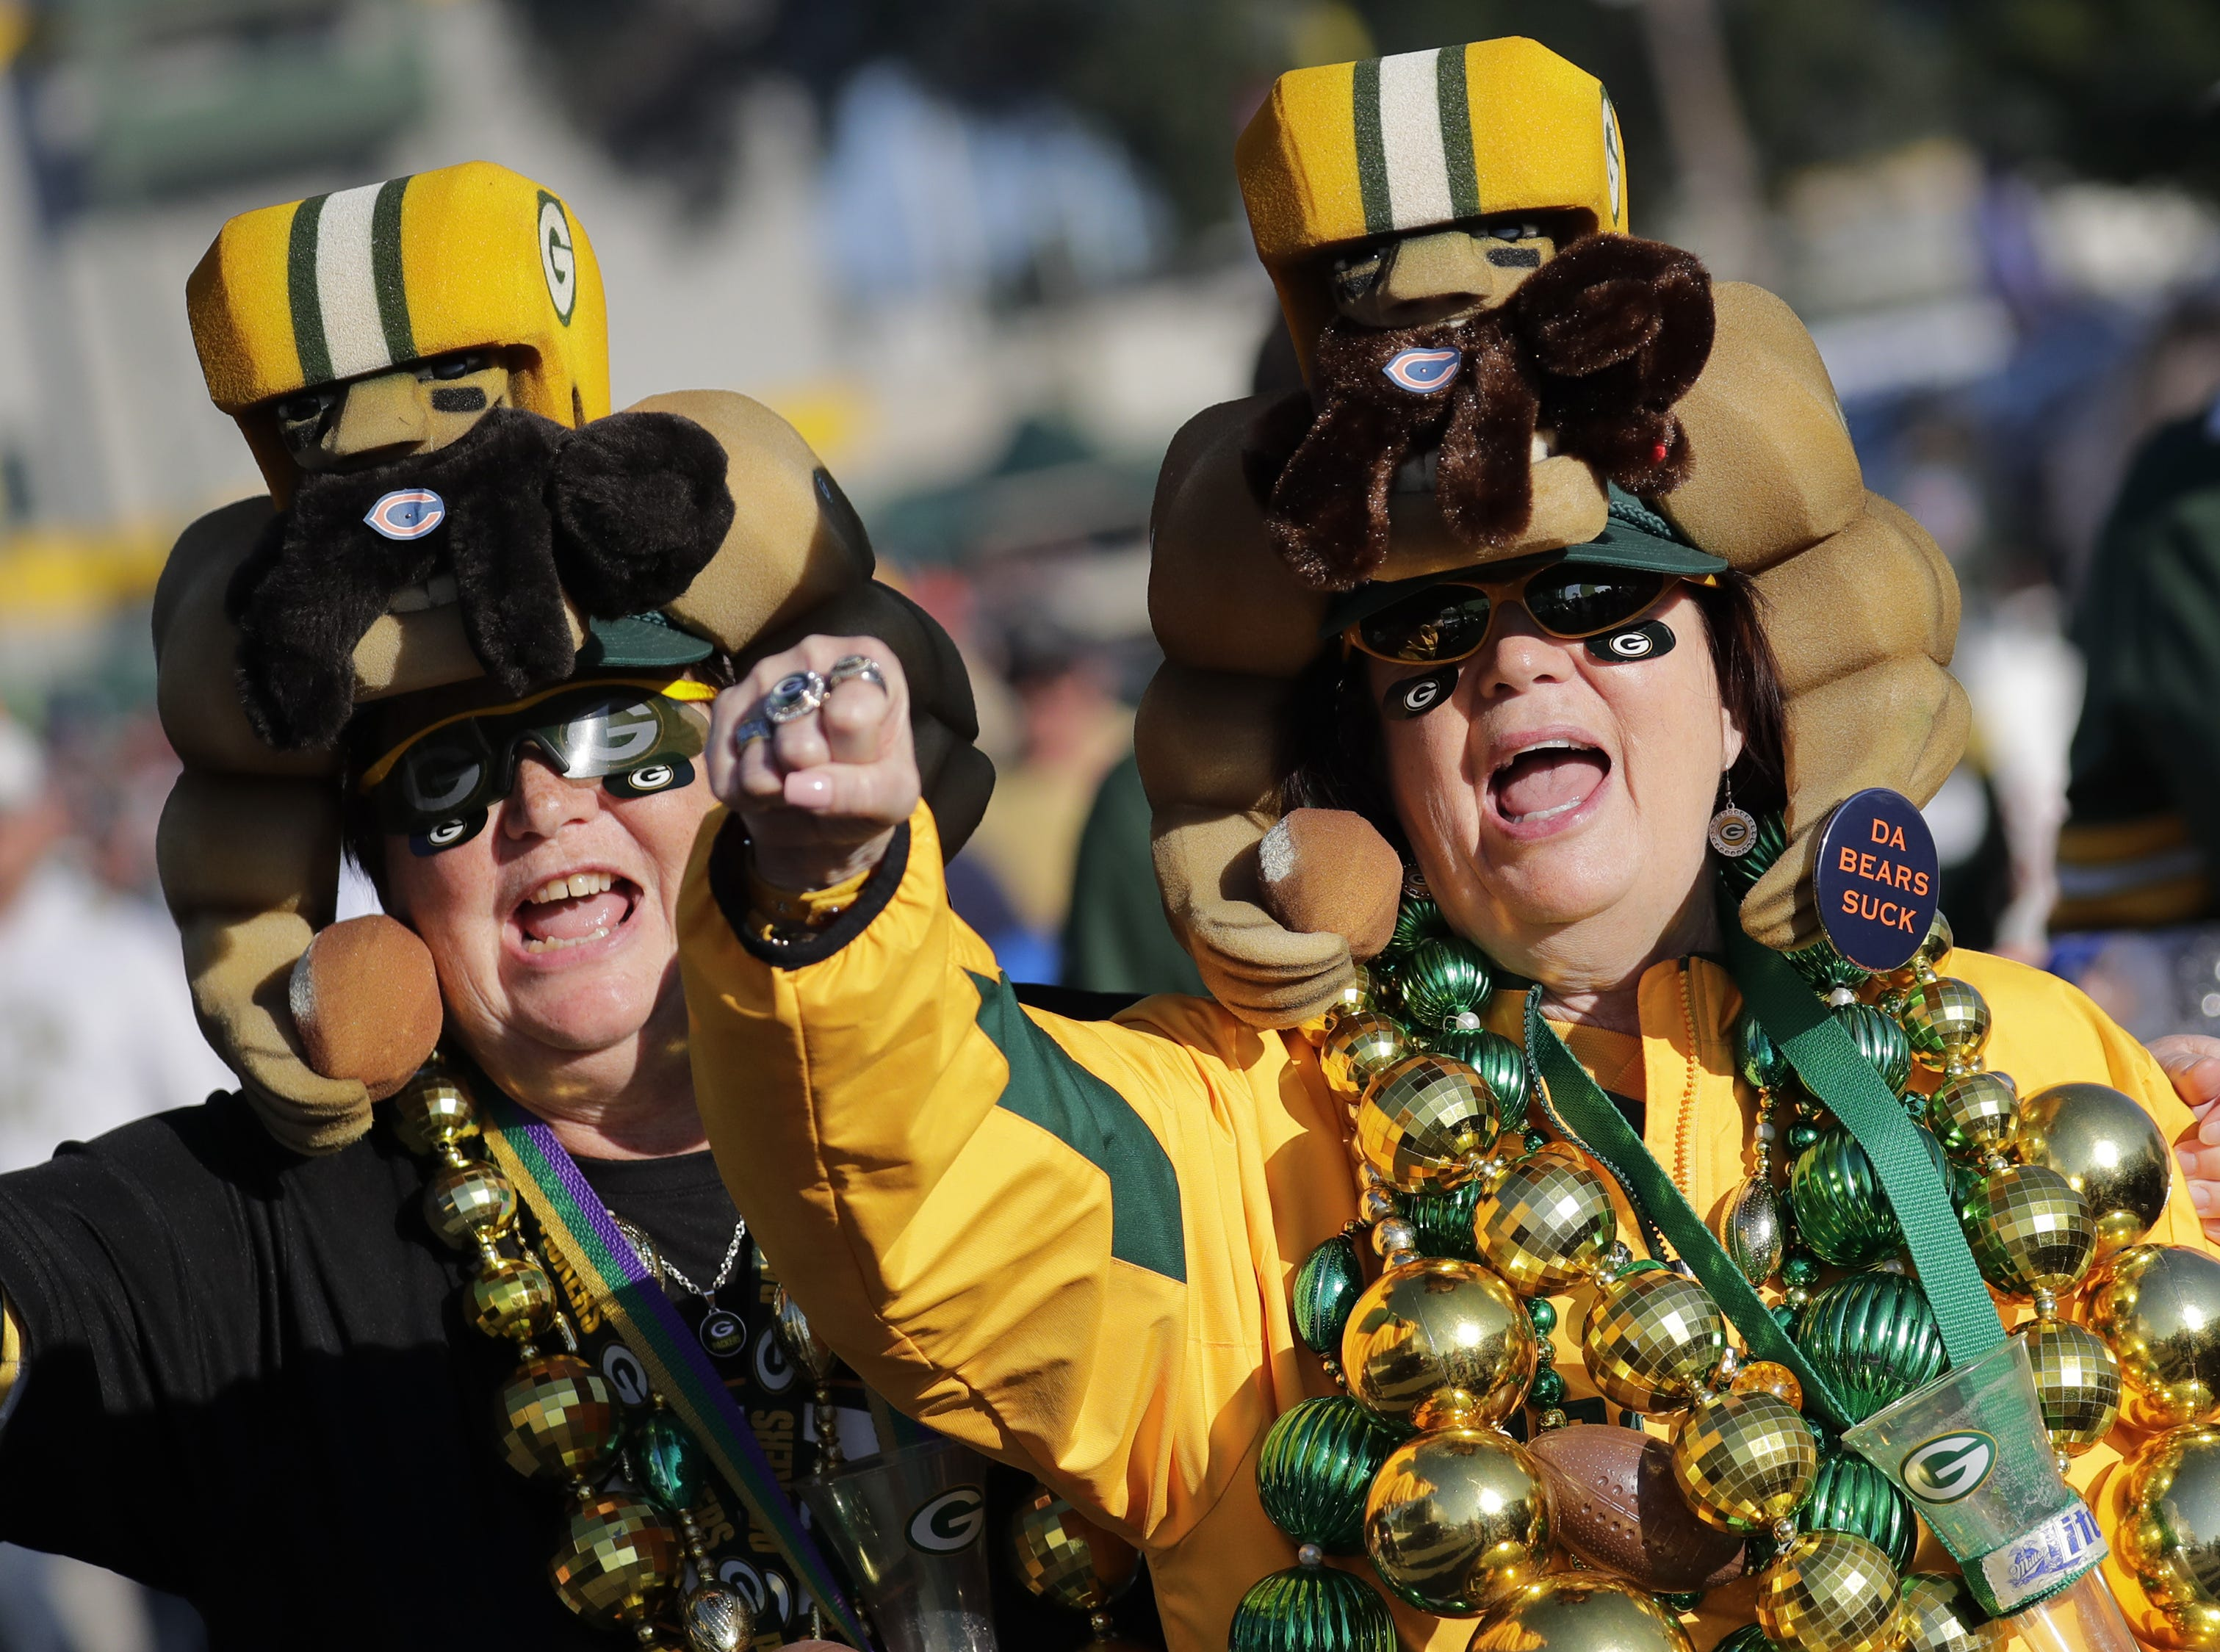 """Chris Schuelke, left, and her sister Jane Thiel, both of Dale, cheer """"Go Pack Go!"""", prior to the Green Bay Packers playing against the Chicago Bears Sunday, Sept. 9, 2018, at Lambeau Field in Green Bay, Wis."""